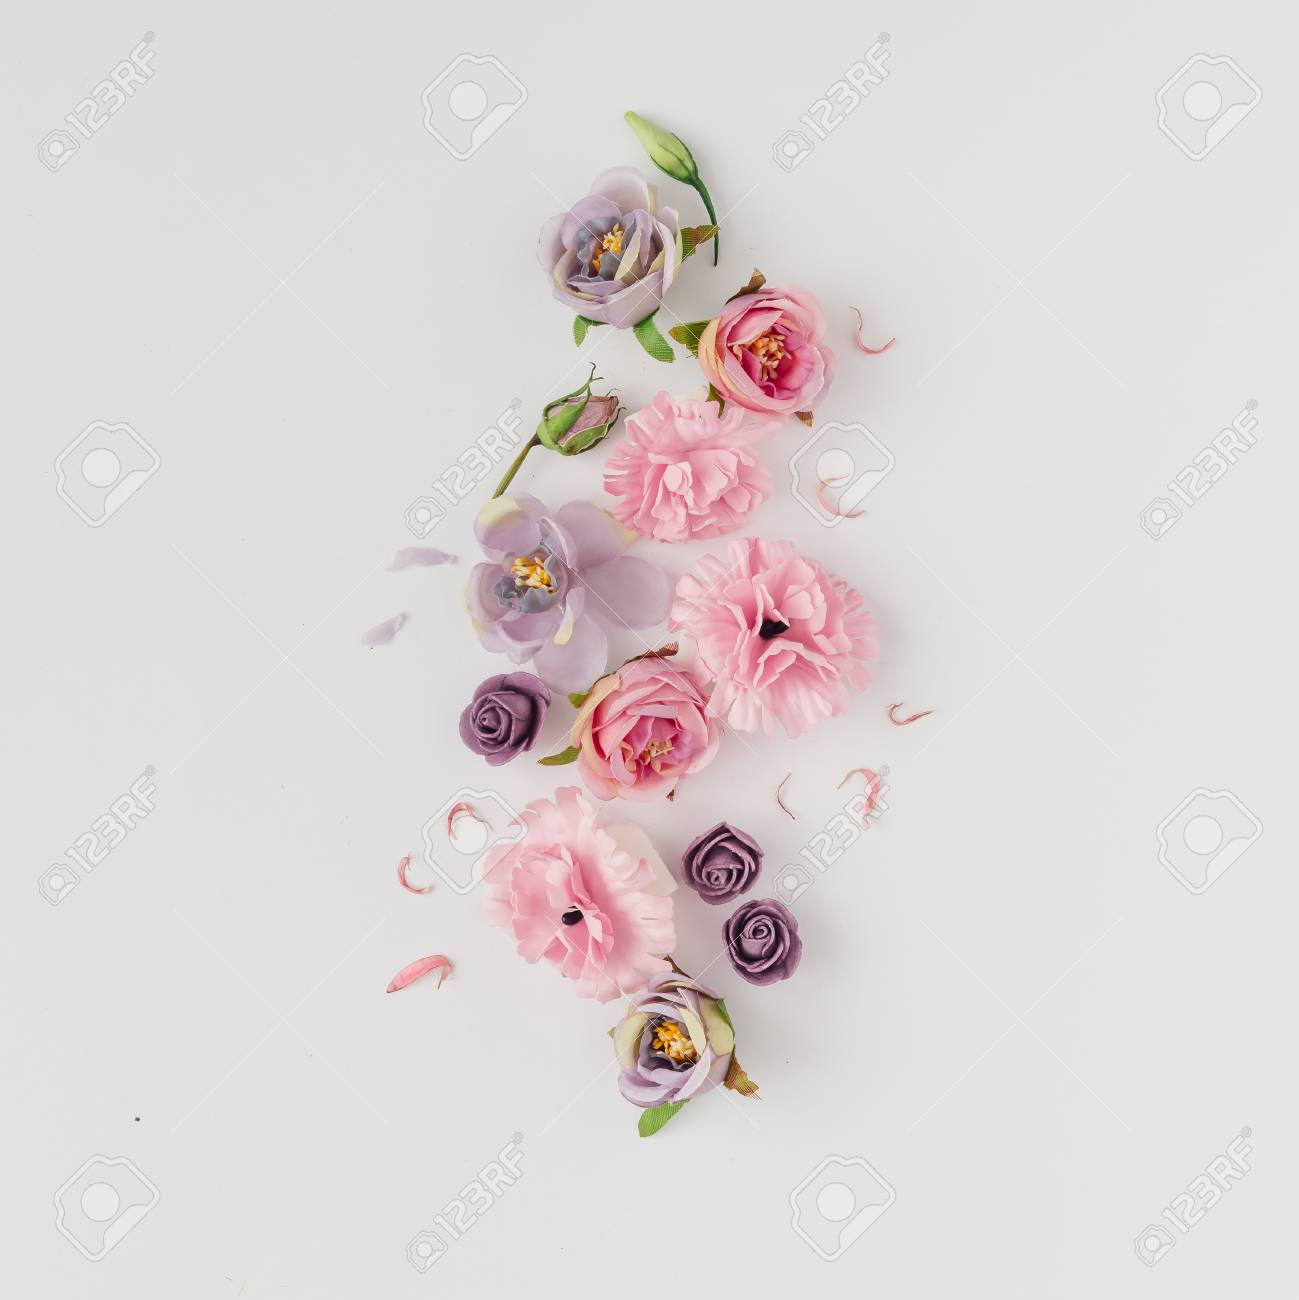 Creative layout made with pink and violet flowers on bright background. Flat lay. Spring minimal concept. - 94909991